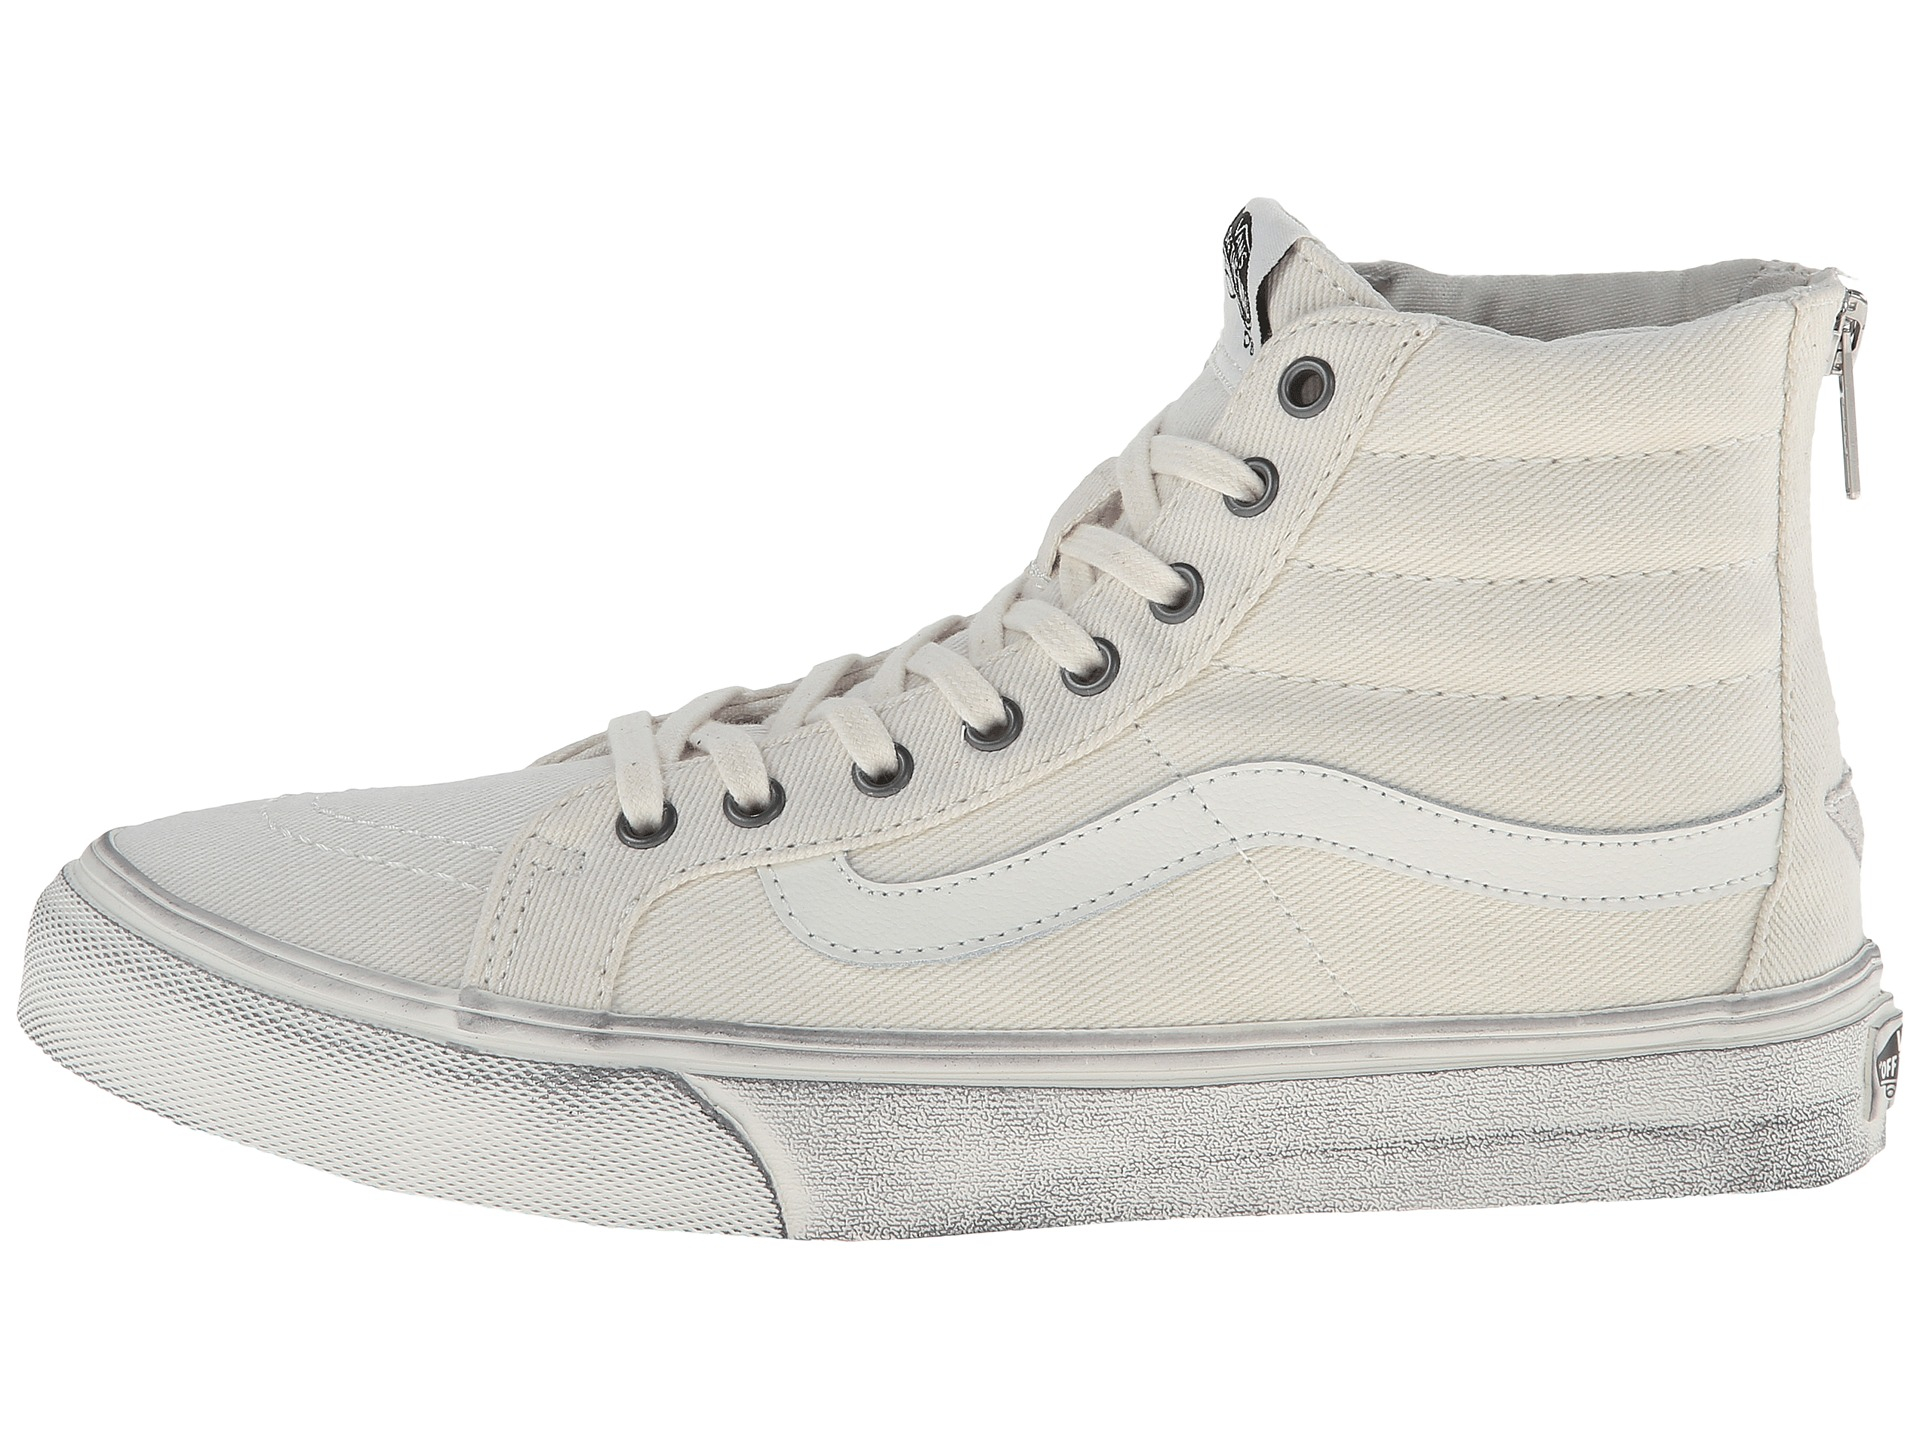 Lord Of The Rings Vans Shoes